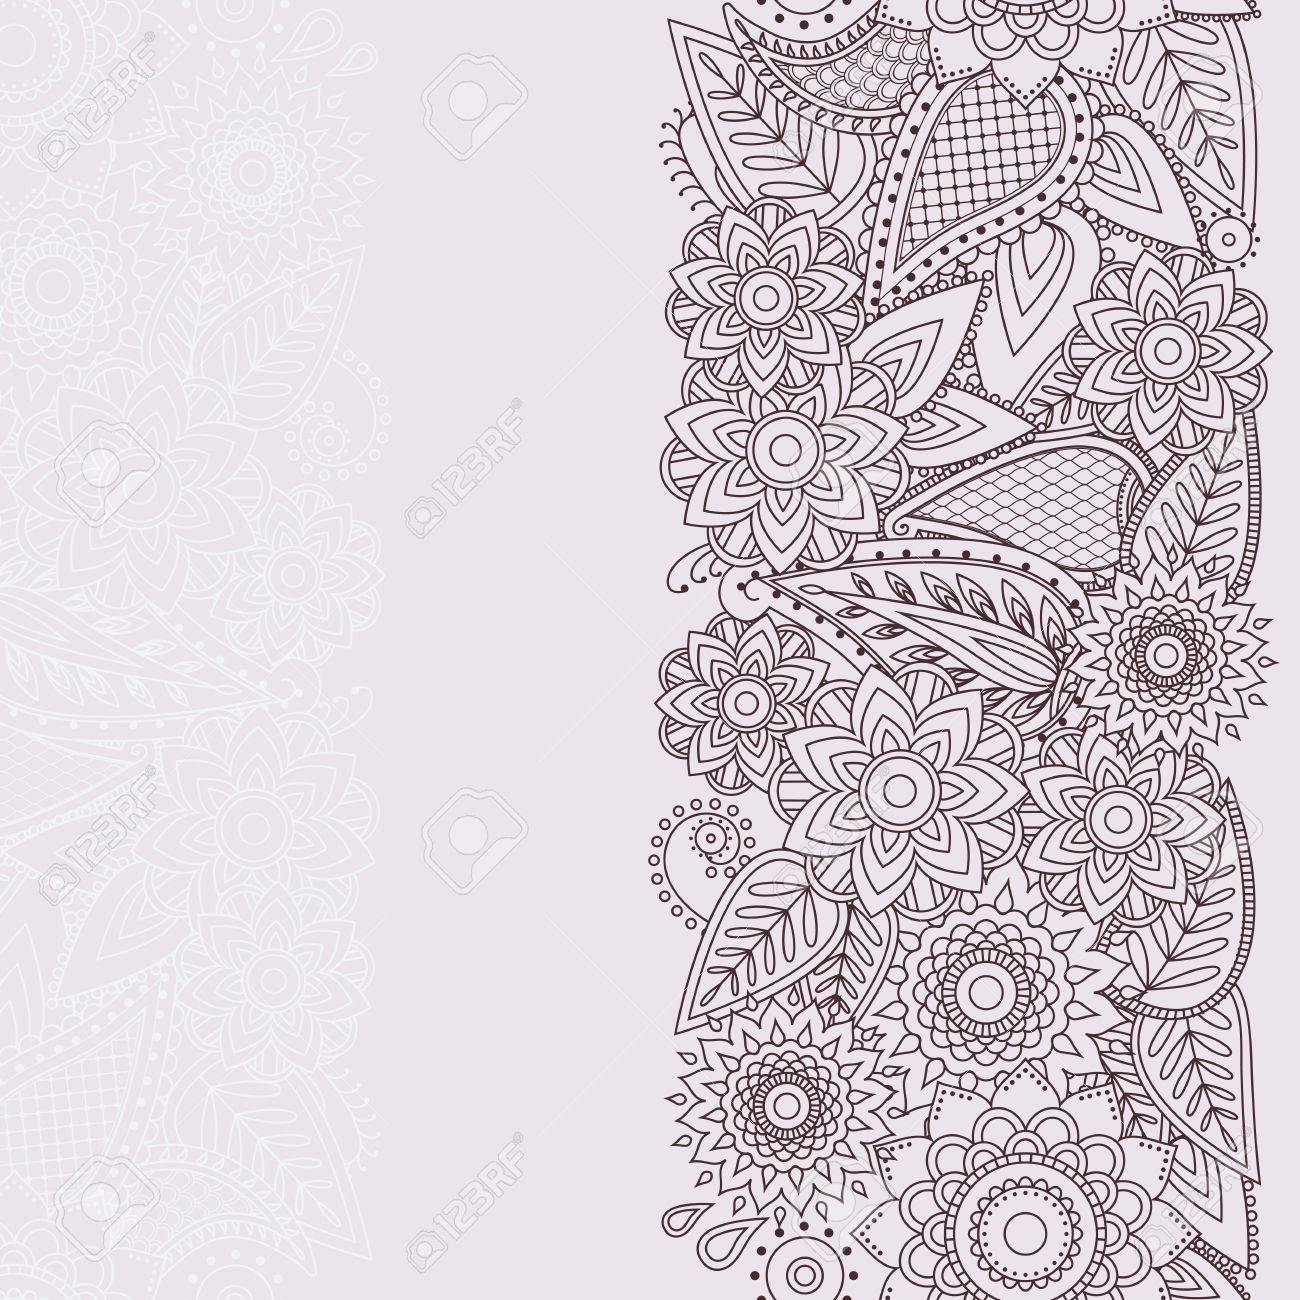 Henna flowers mehndi design vector element with text place for henna flowers mehndi design vector element with text place for invitations and cards paisley doodle seamless vector pattern beautiful floral elements in stopboris Gallery